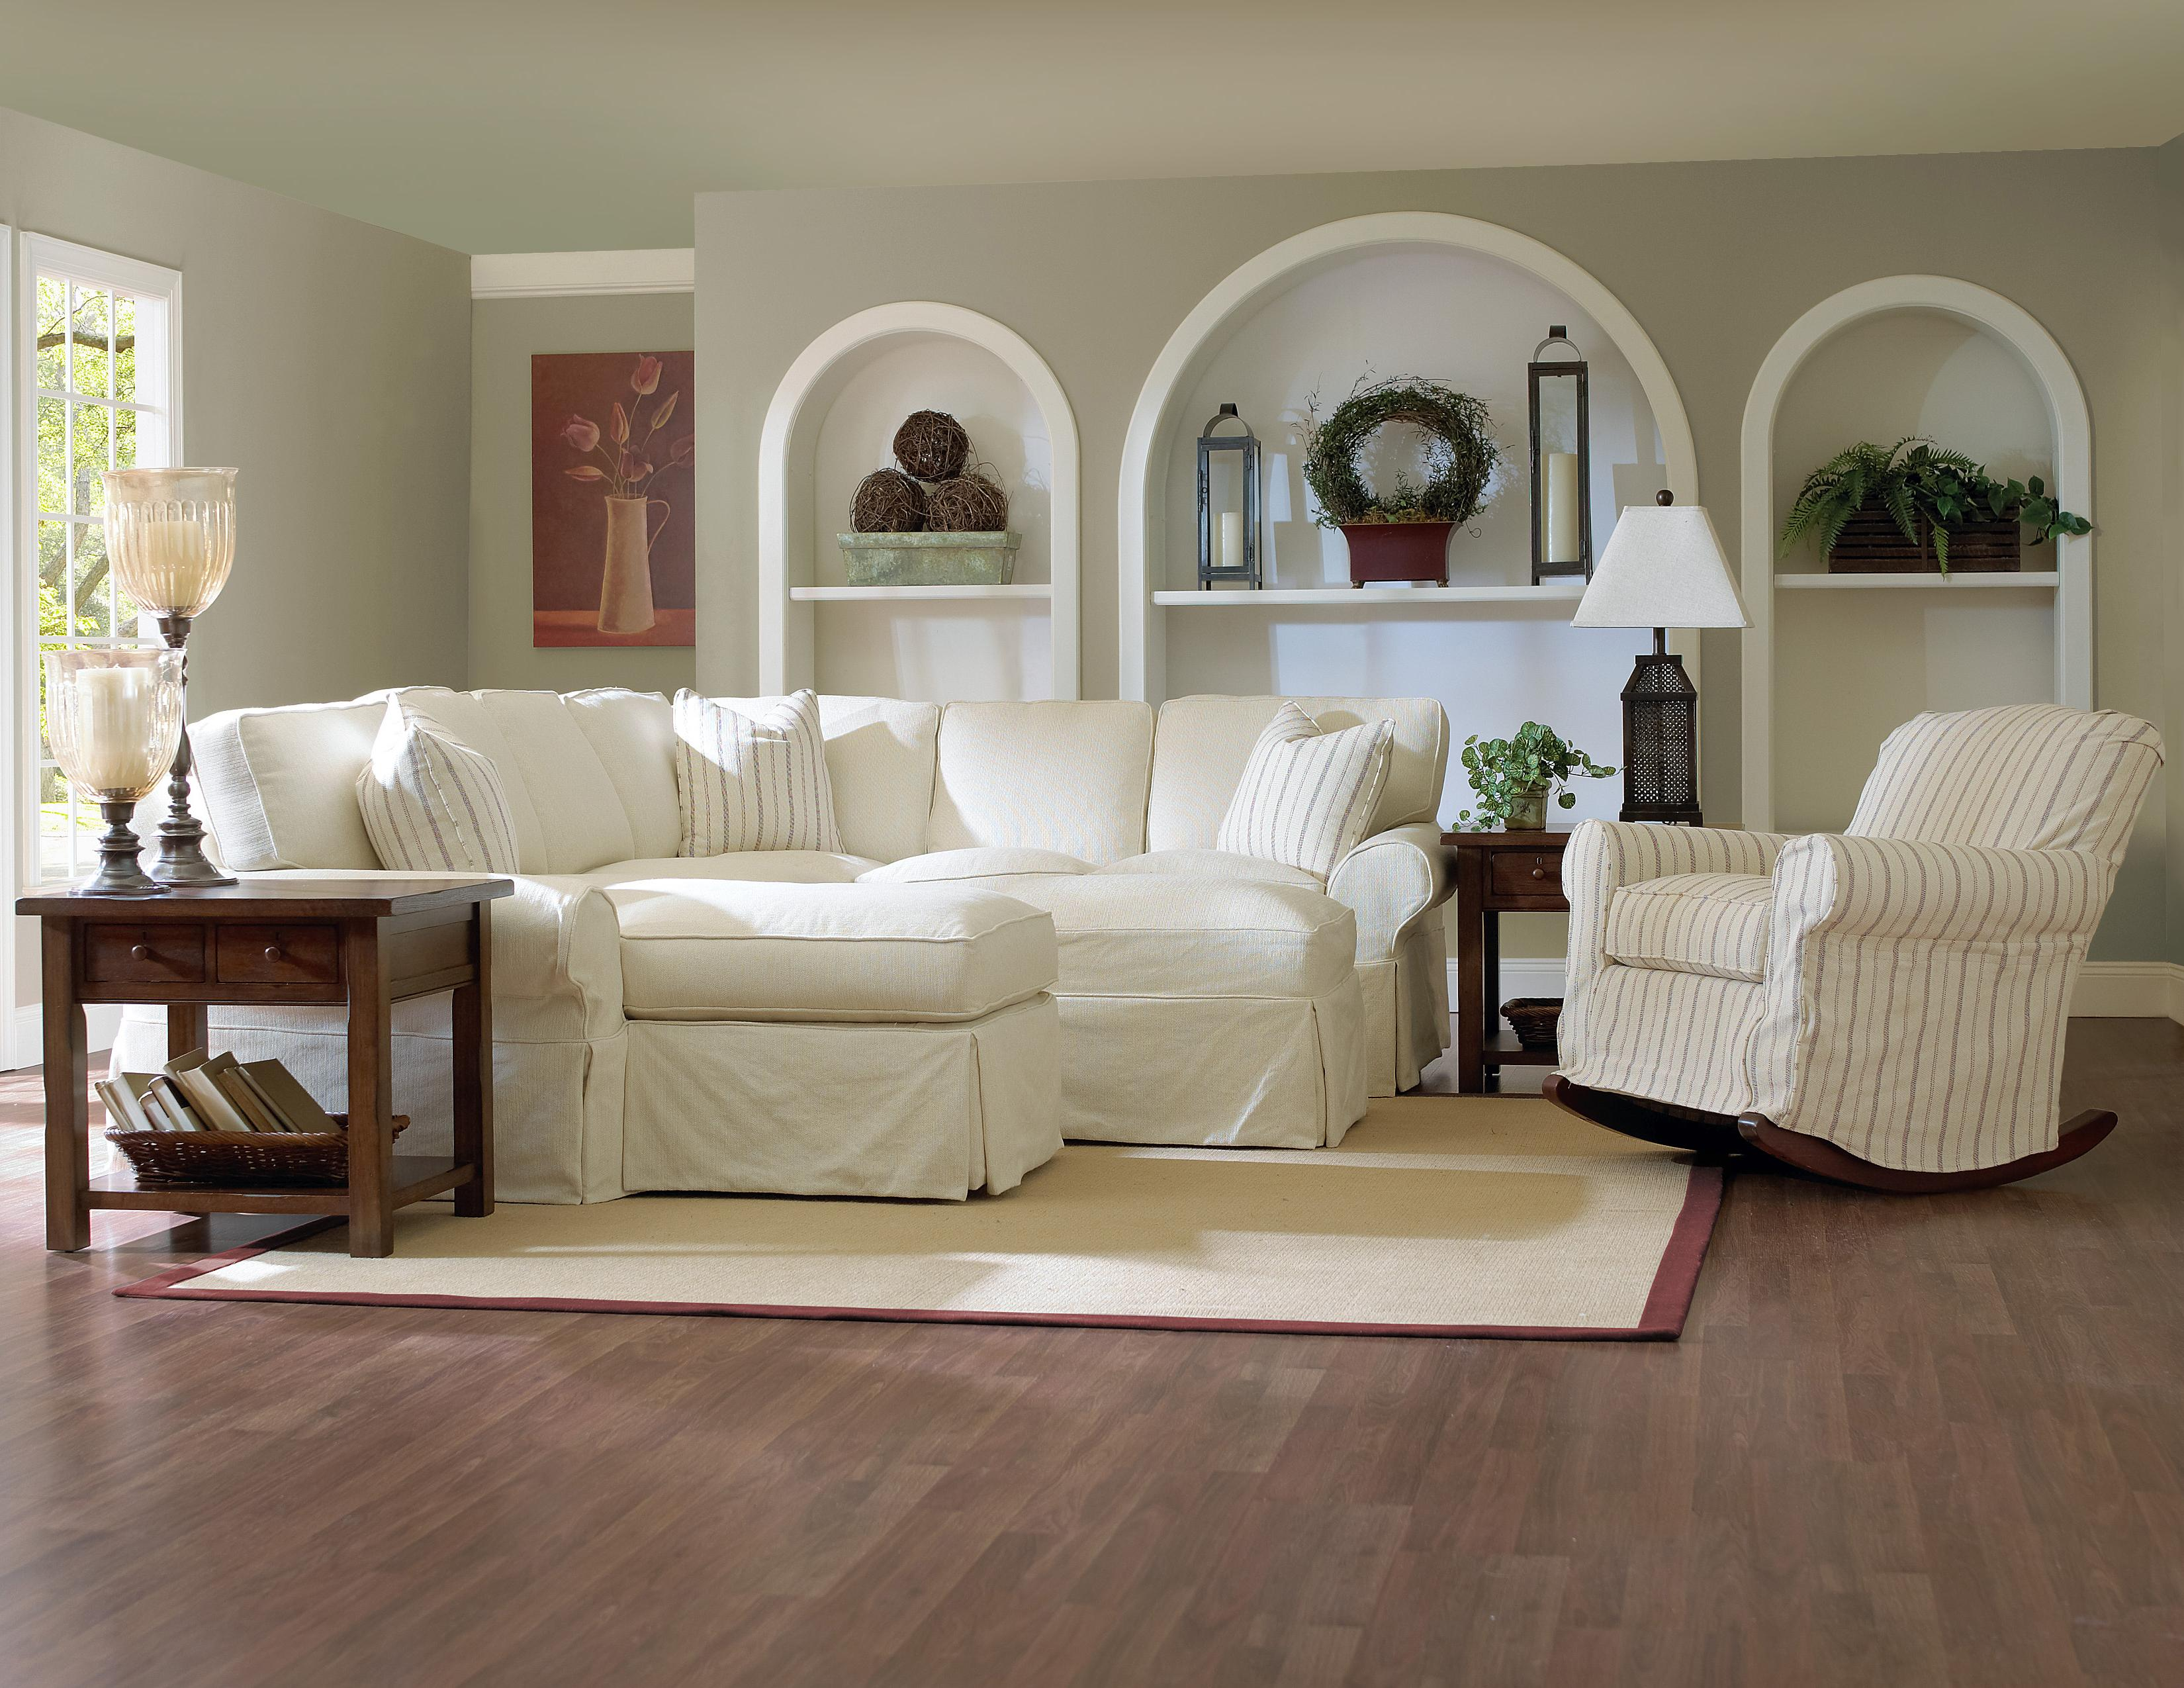 sectional slipcovers pottery barn knock off jcpenney sectional sofa